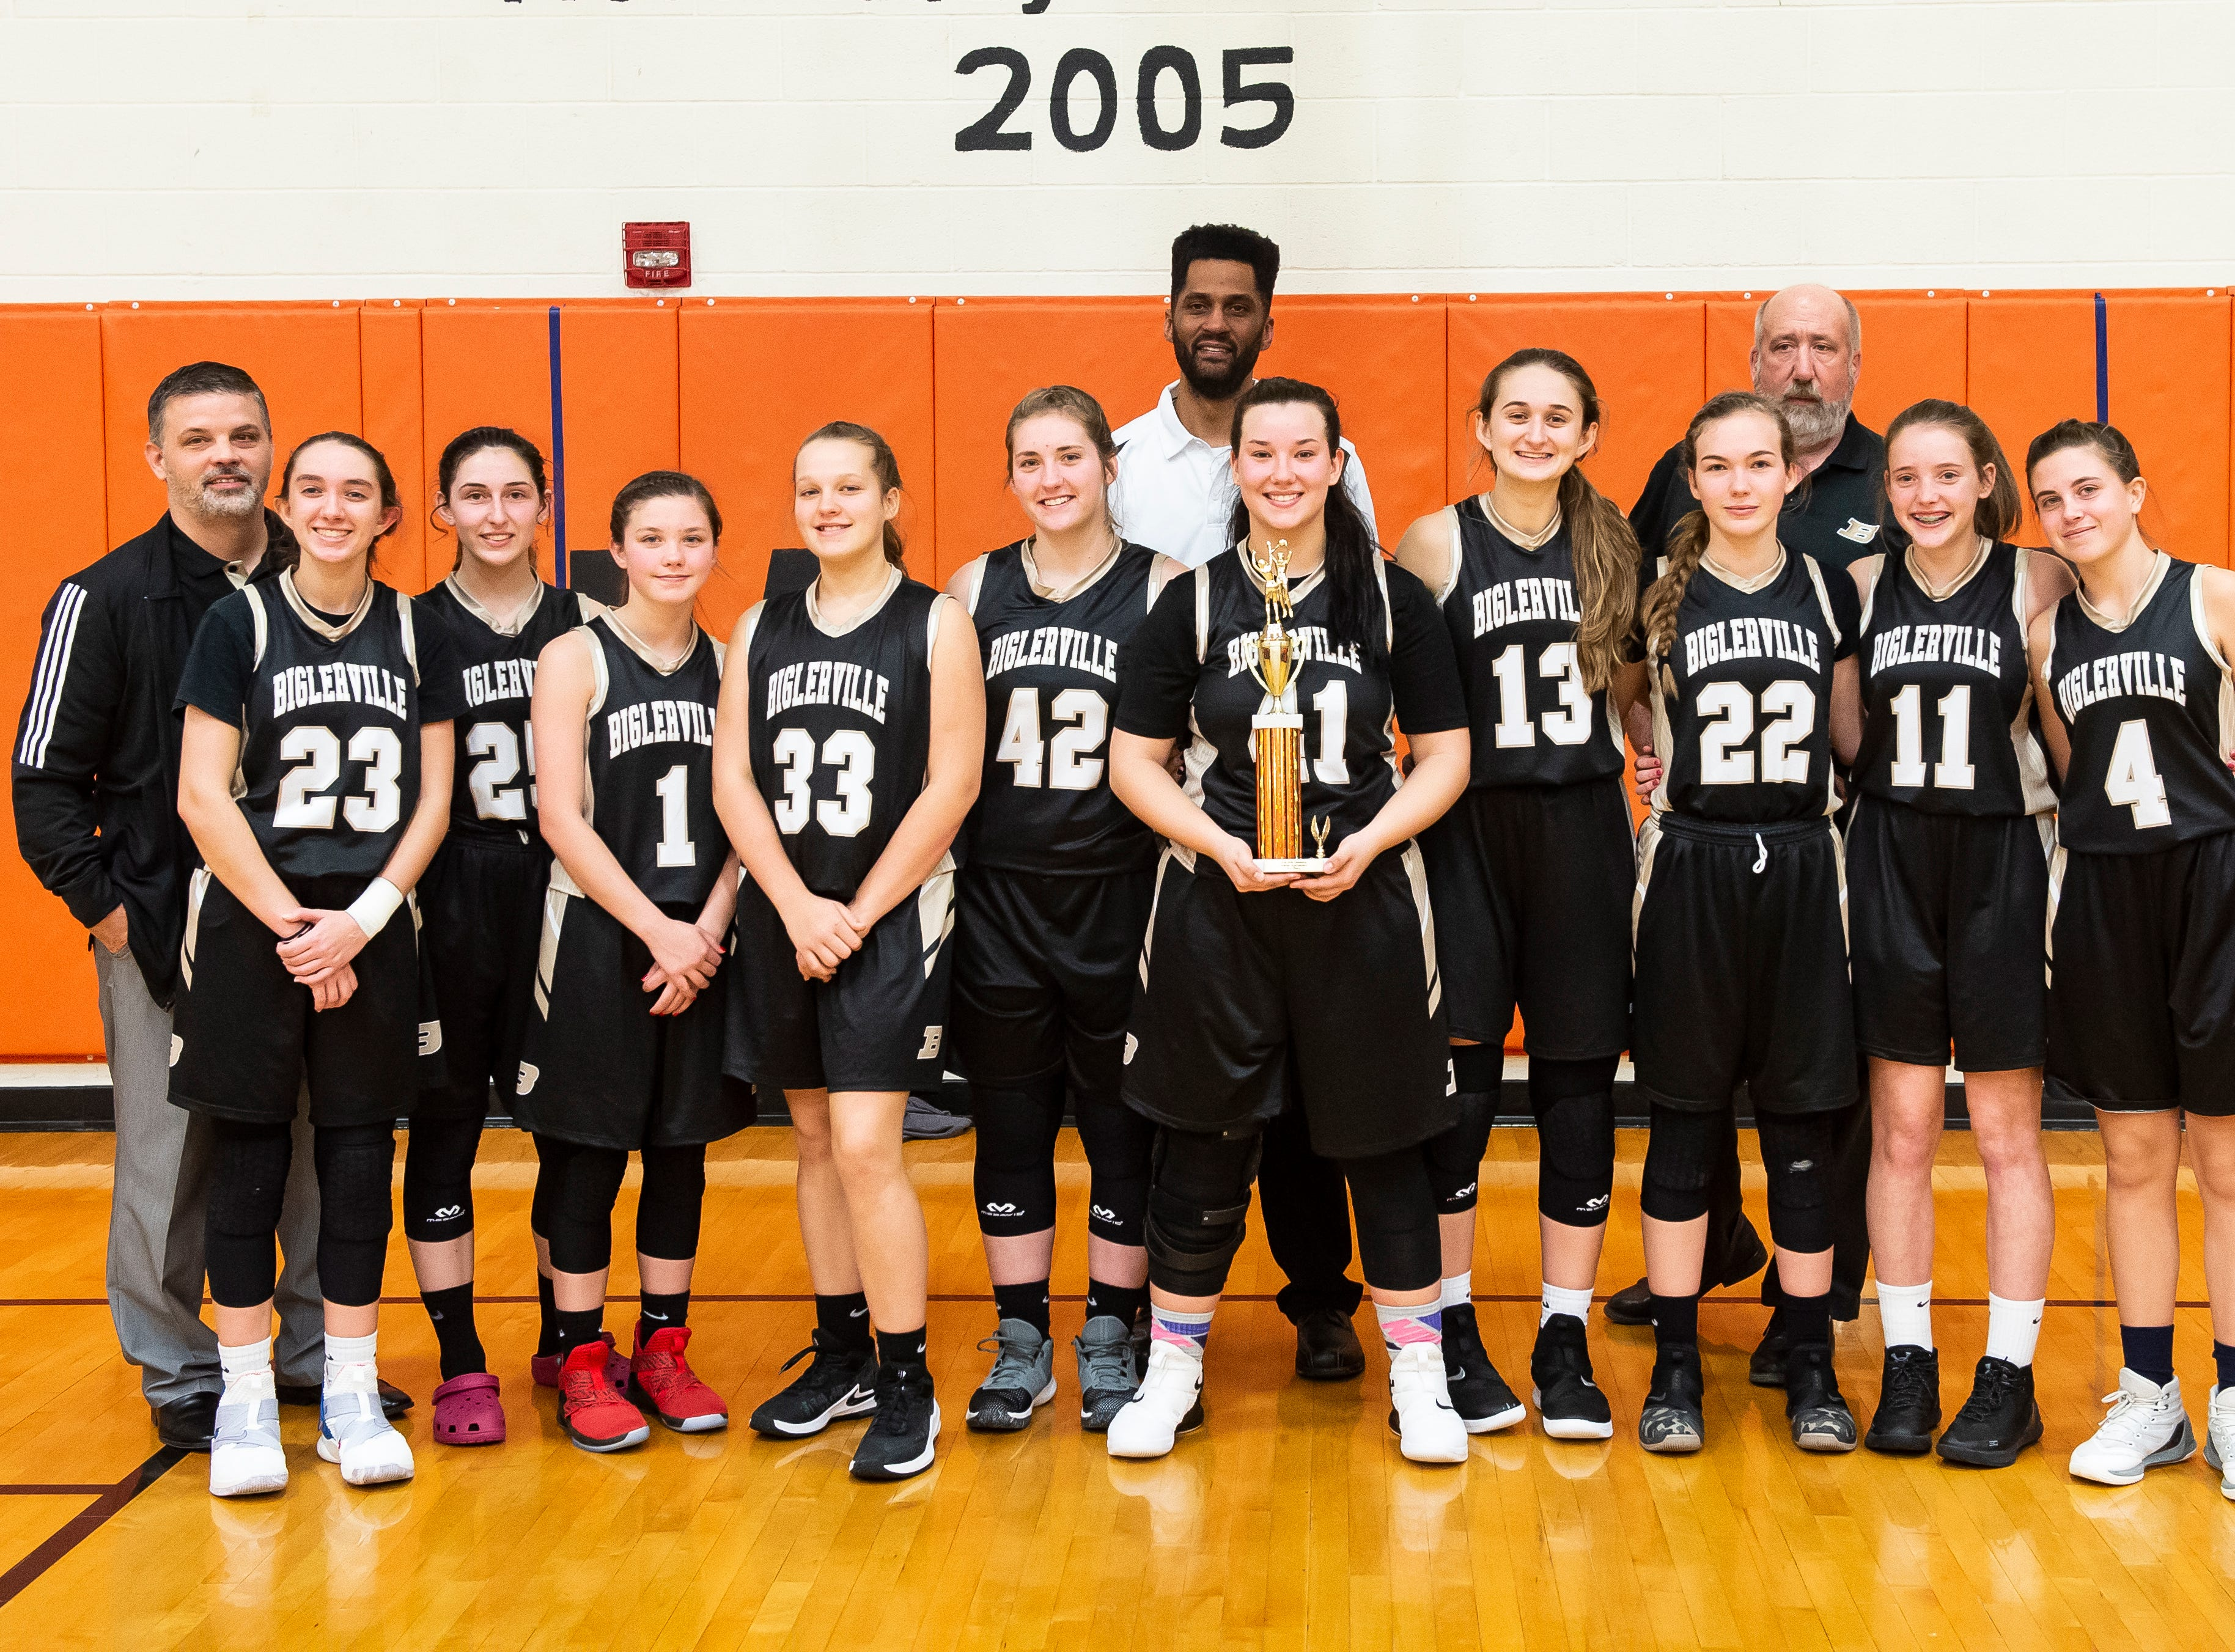 The Biglerville girls' basketball team pose for a team photo after taking second place the Hanover Holiday Classic on Friday, December 28, 2018. Hanover defeated Biglerville 30-20.